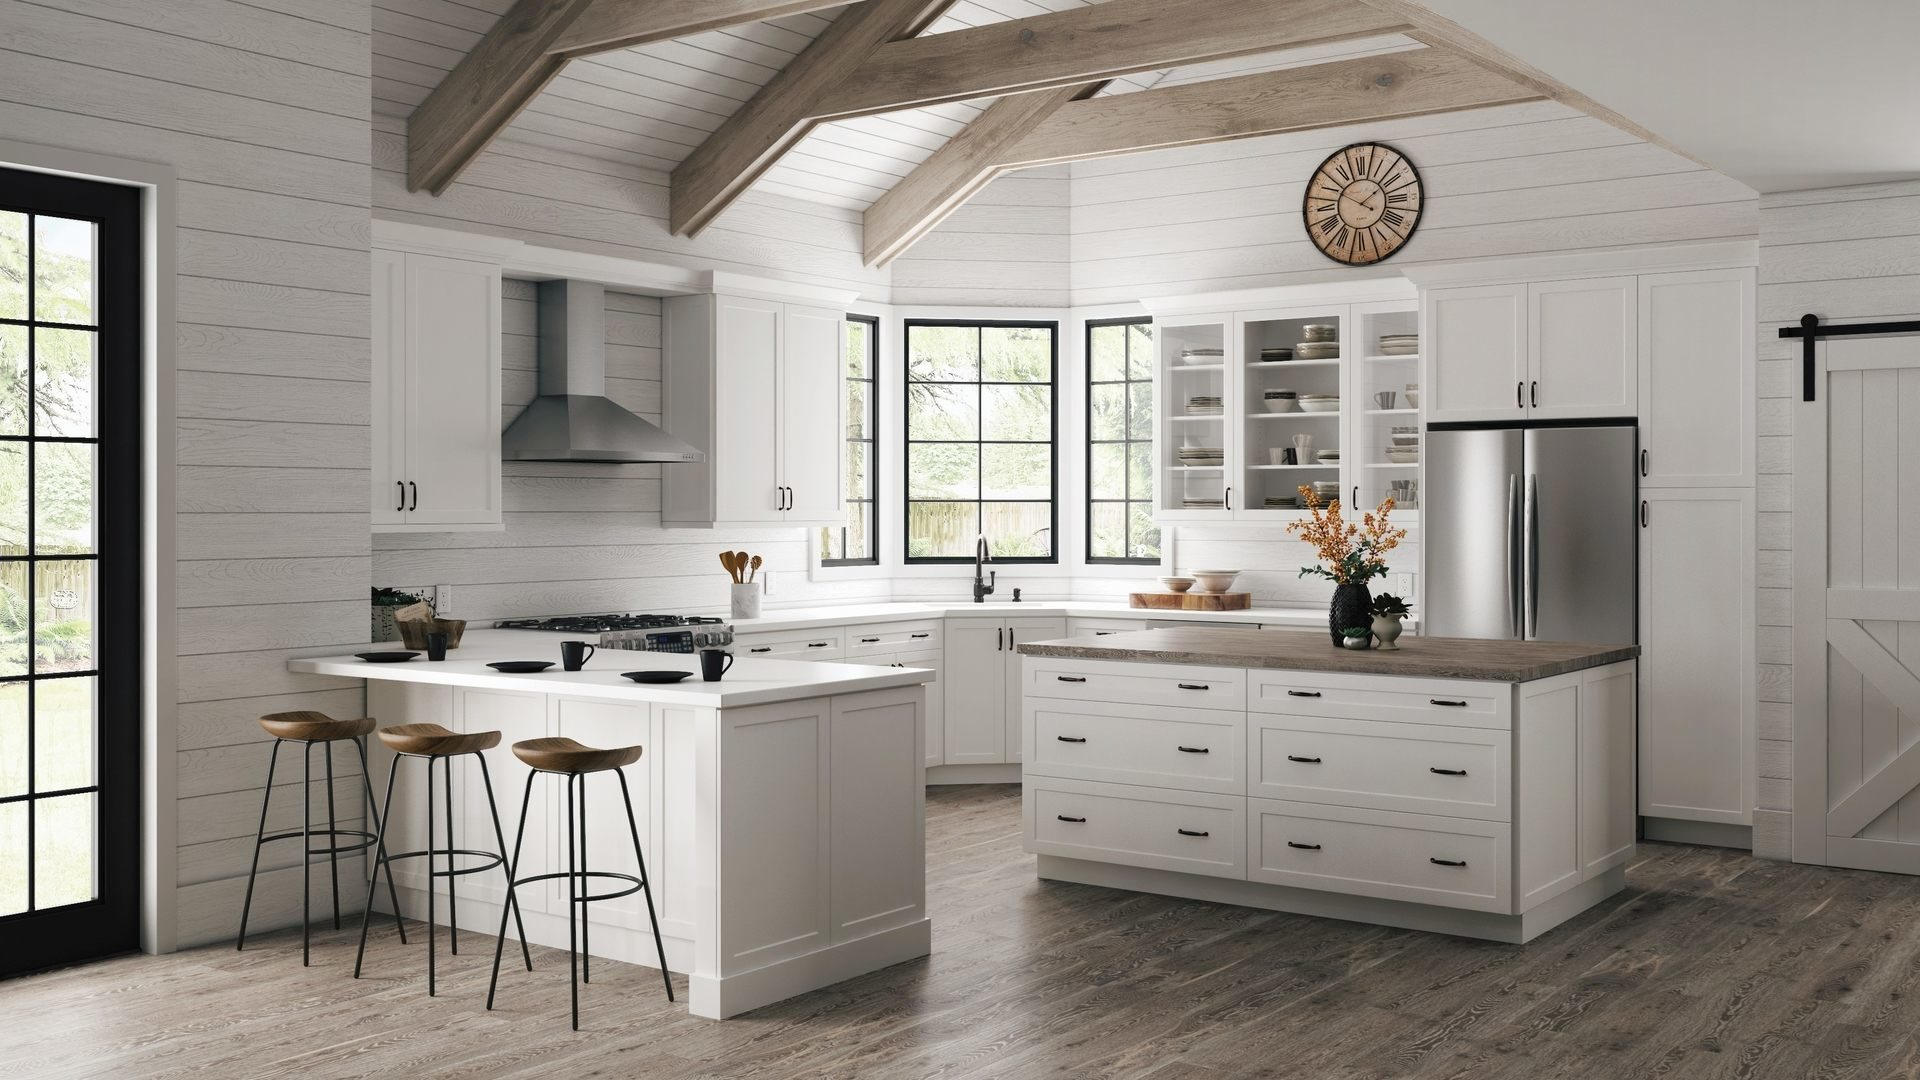 Melvern Double Oven Cabinets In White Kitchen The Home